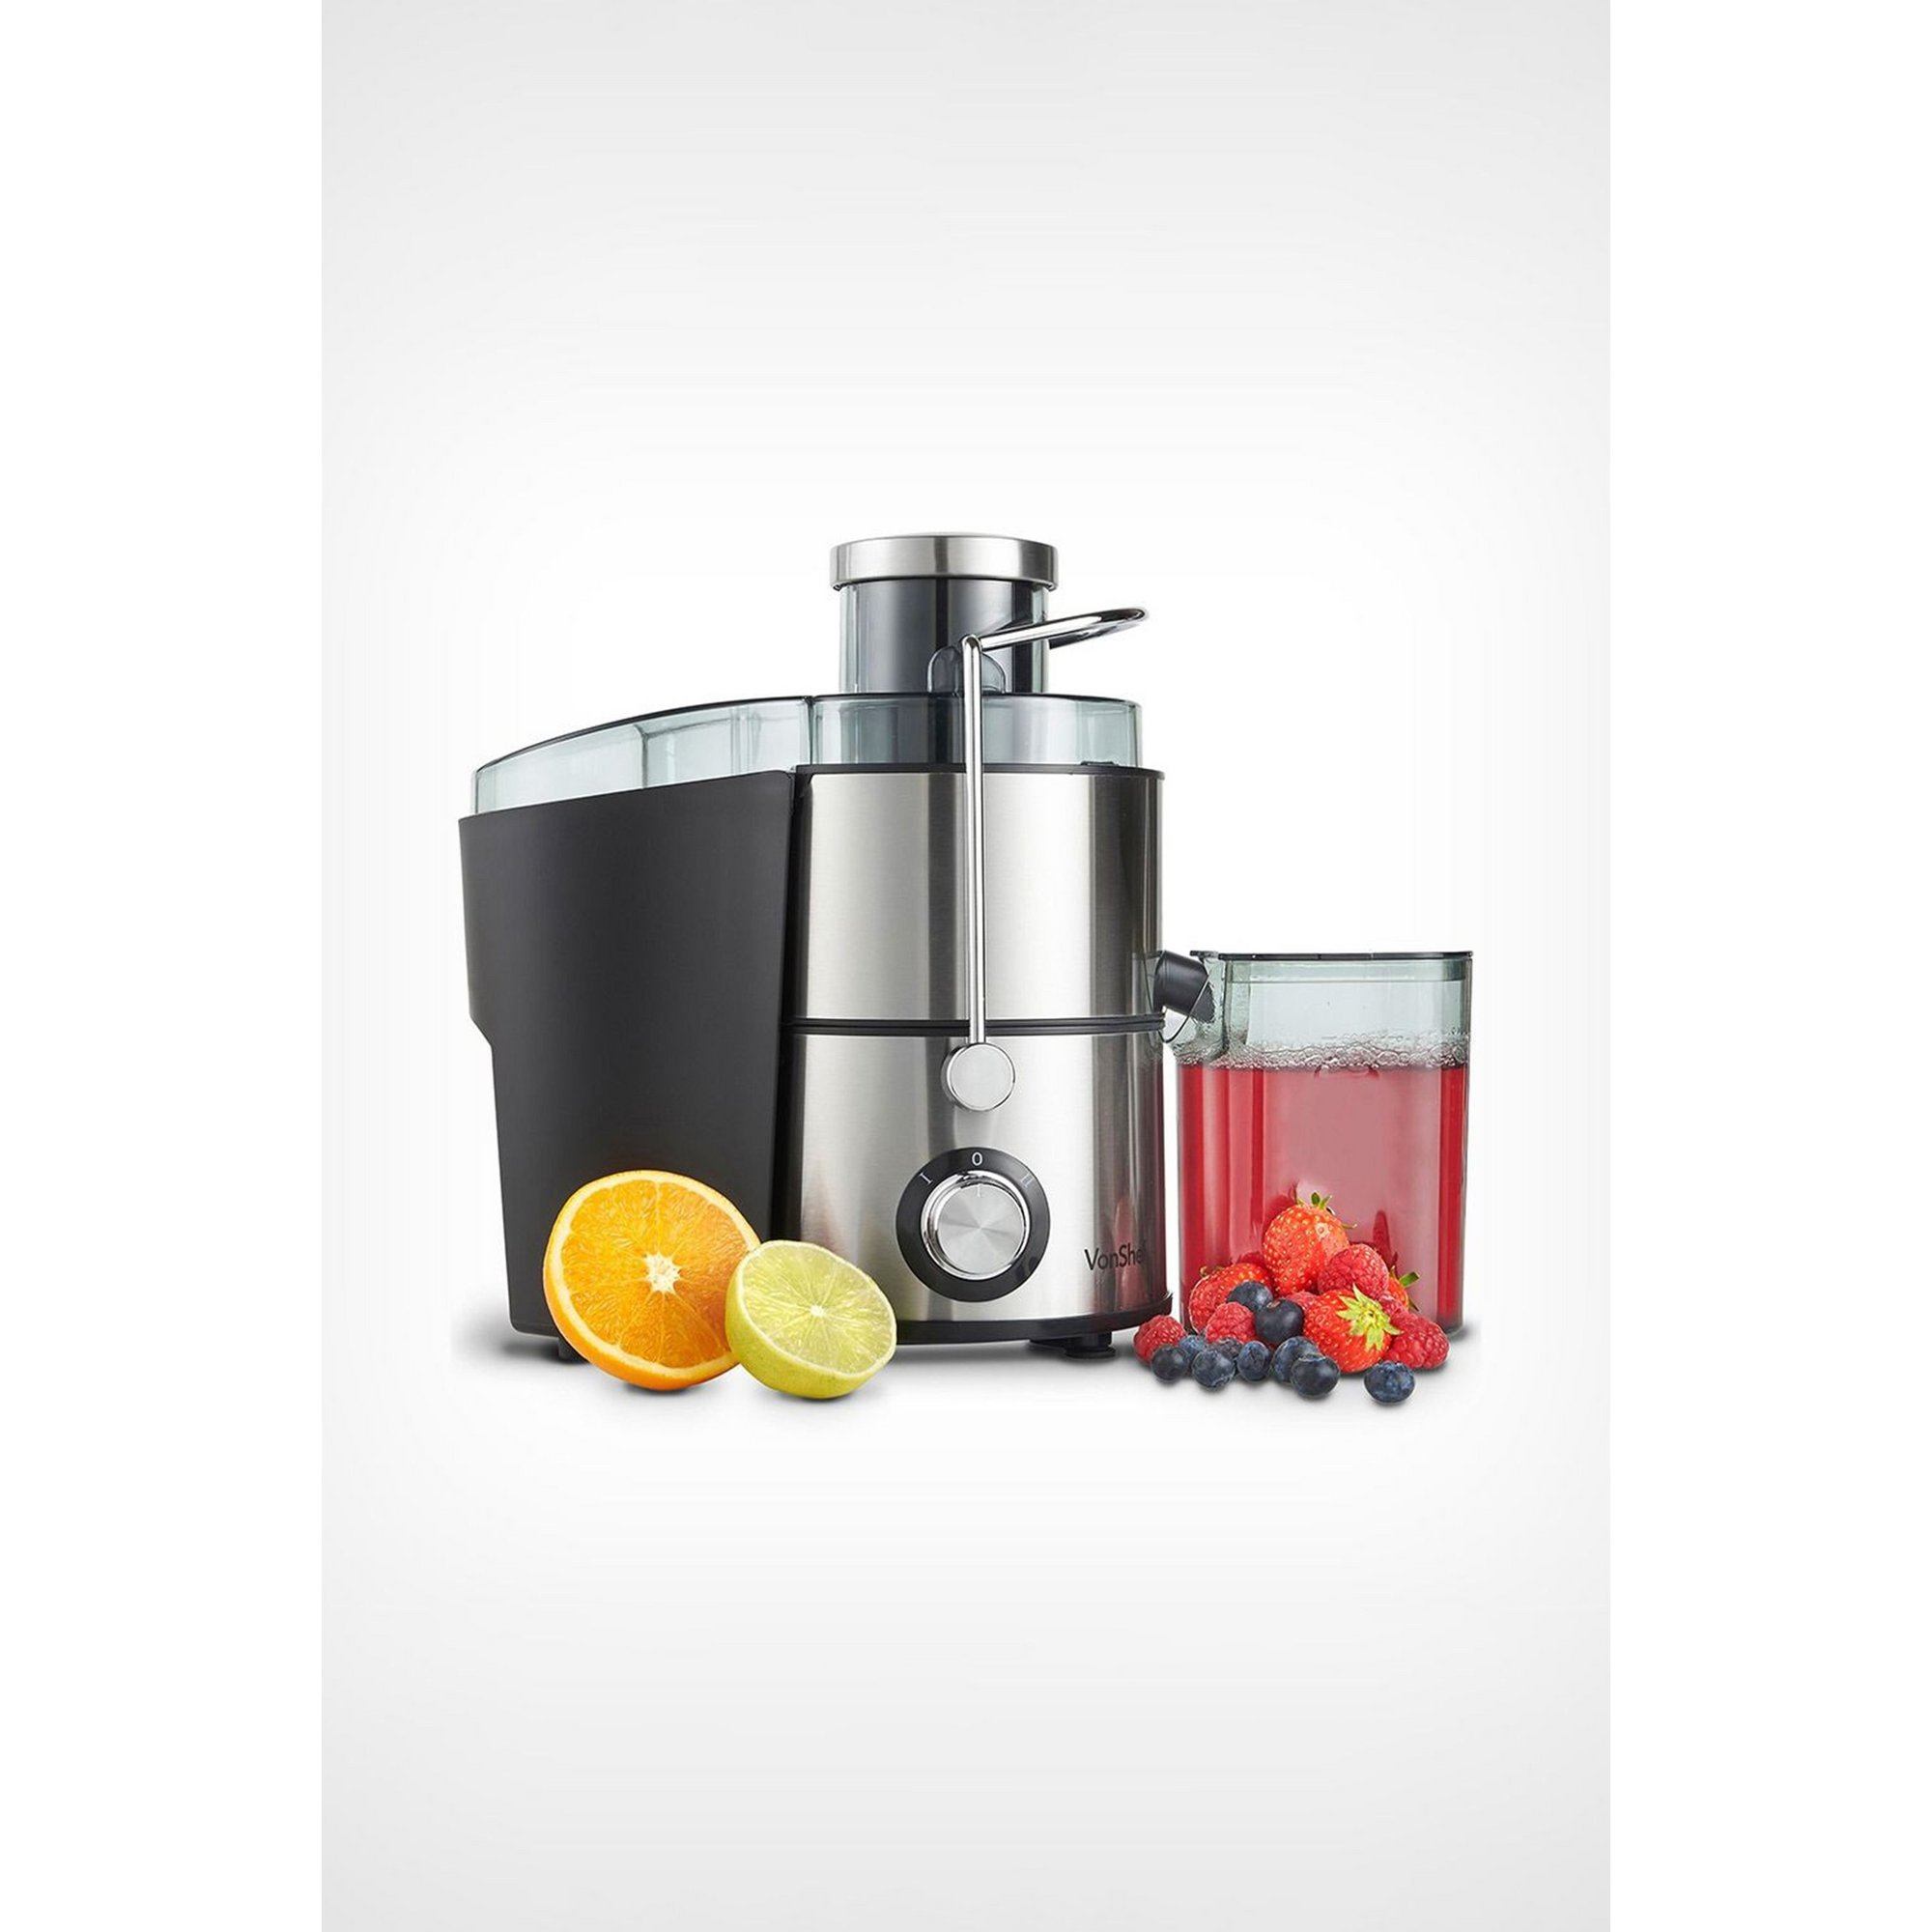 Image of VonShef 400W Stainless Steel Juicer